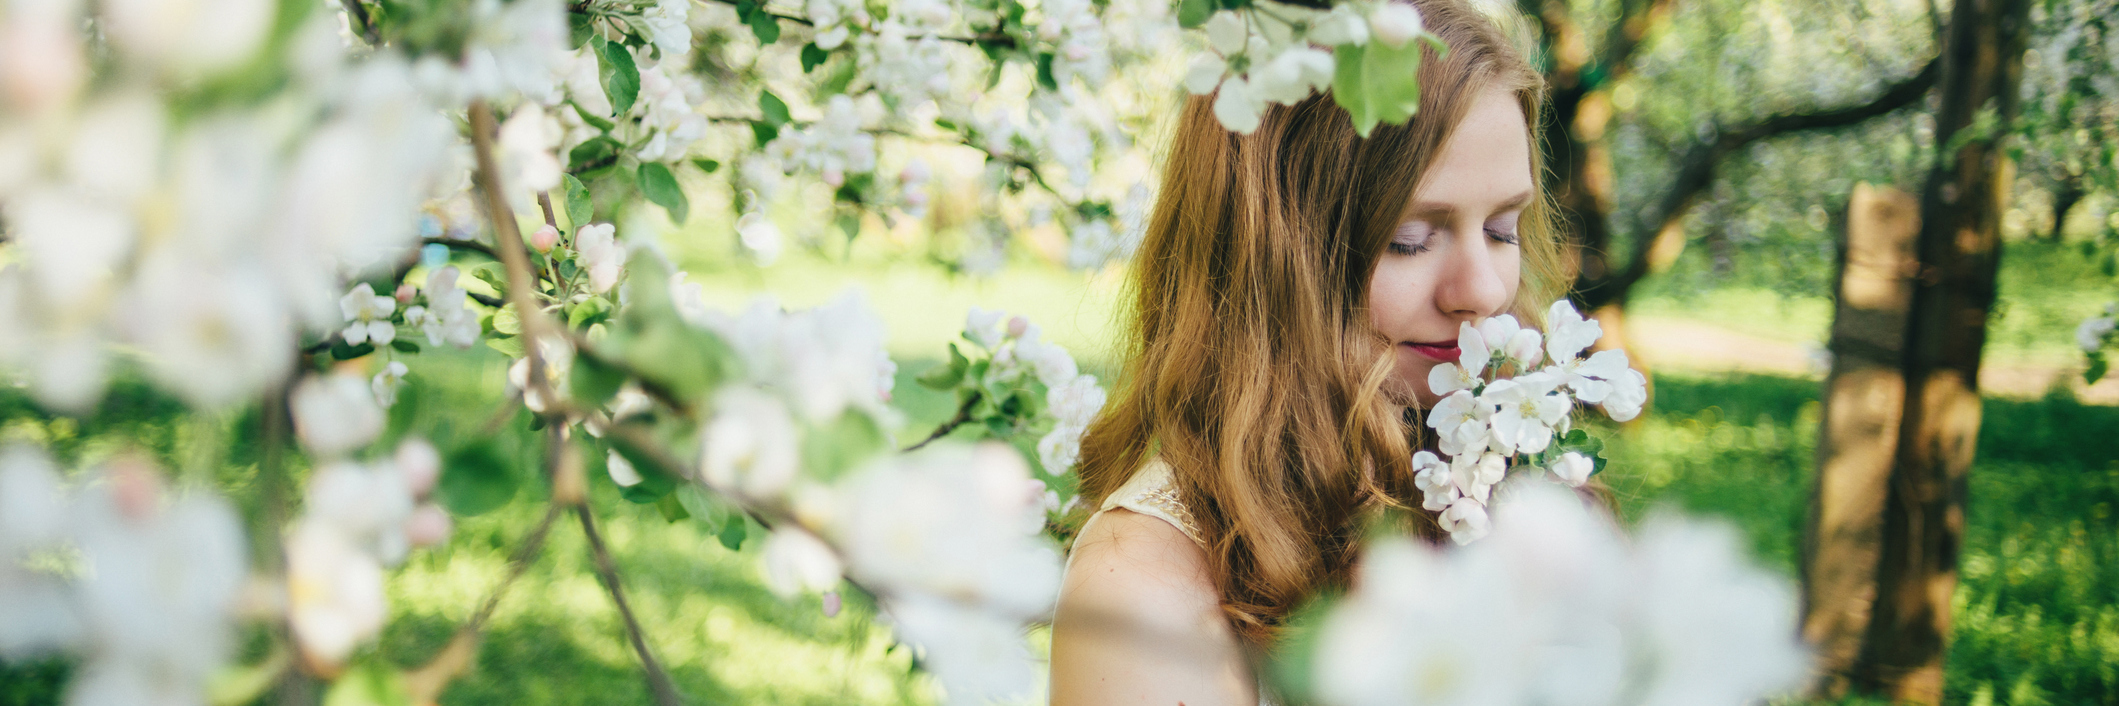 A girl in a white dress, in an apple orchard, smelling flowers.